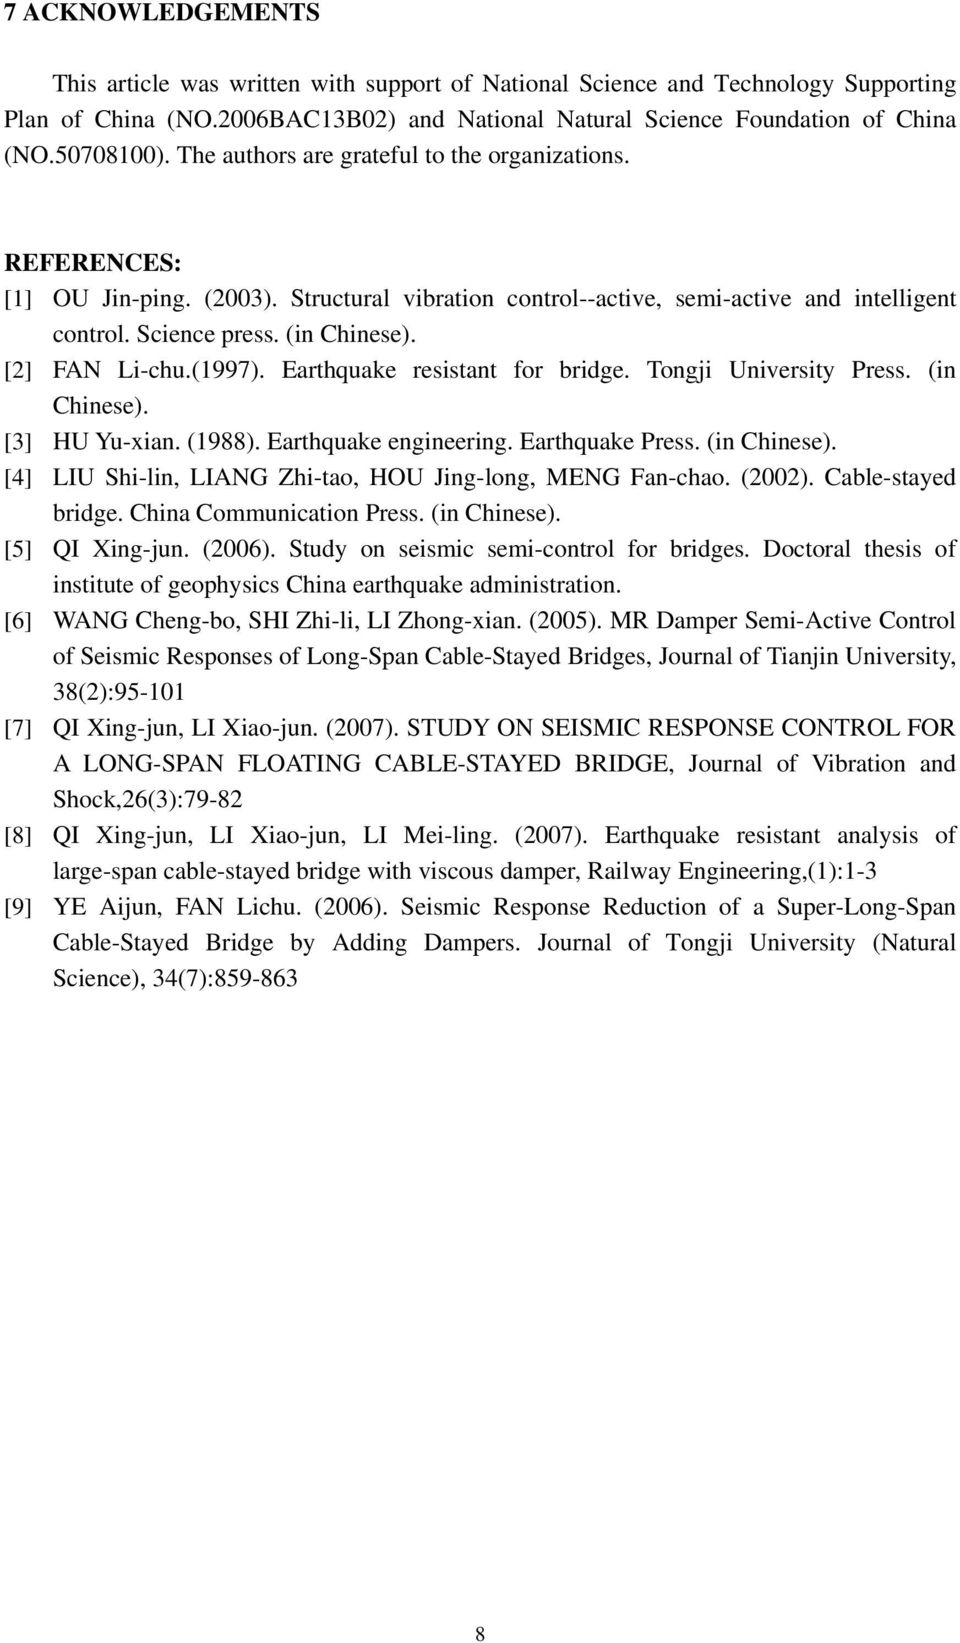 [2] FAN Li-chu.(997). Earthquake resistant for bridge. Tongji University Press. (in Chinese). [] HU u-xian. (988). Earthquake engineering. Earthquake Press. (in Chinese). [4] LIU Shi-lin, LIANG Zhi-tao, HOU Jing-long, MENG Fan-chao.